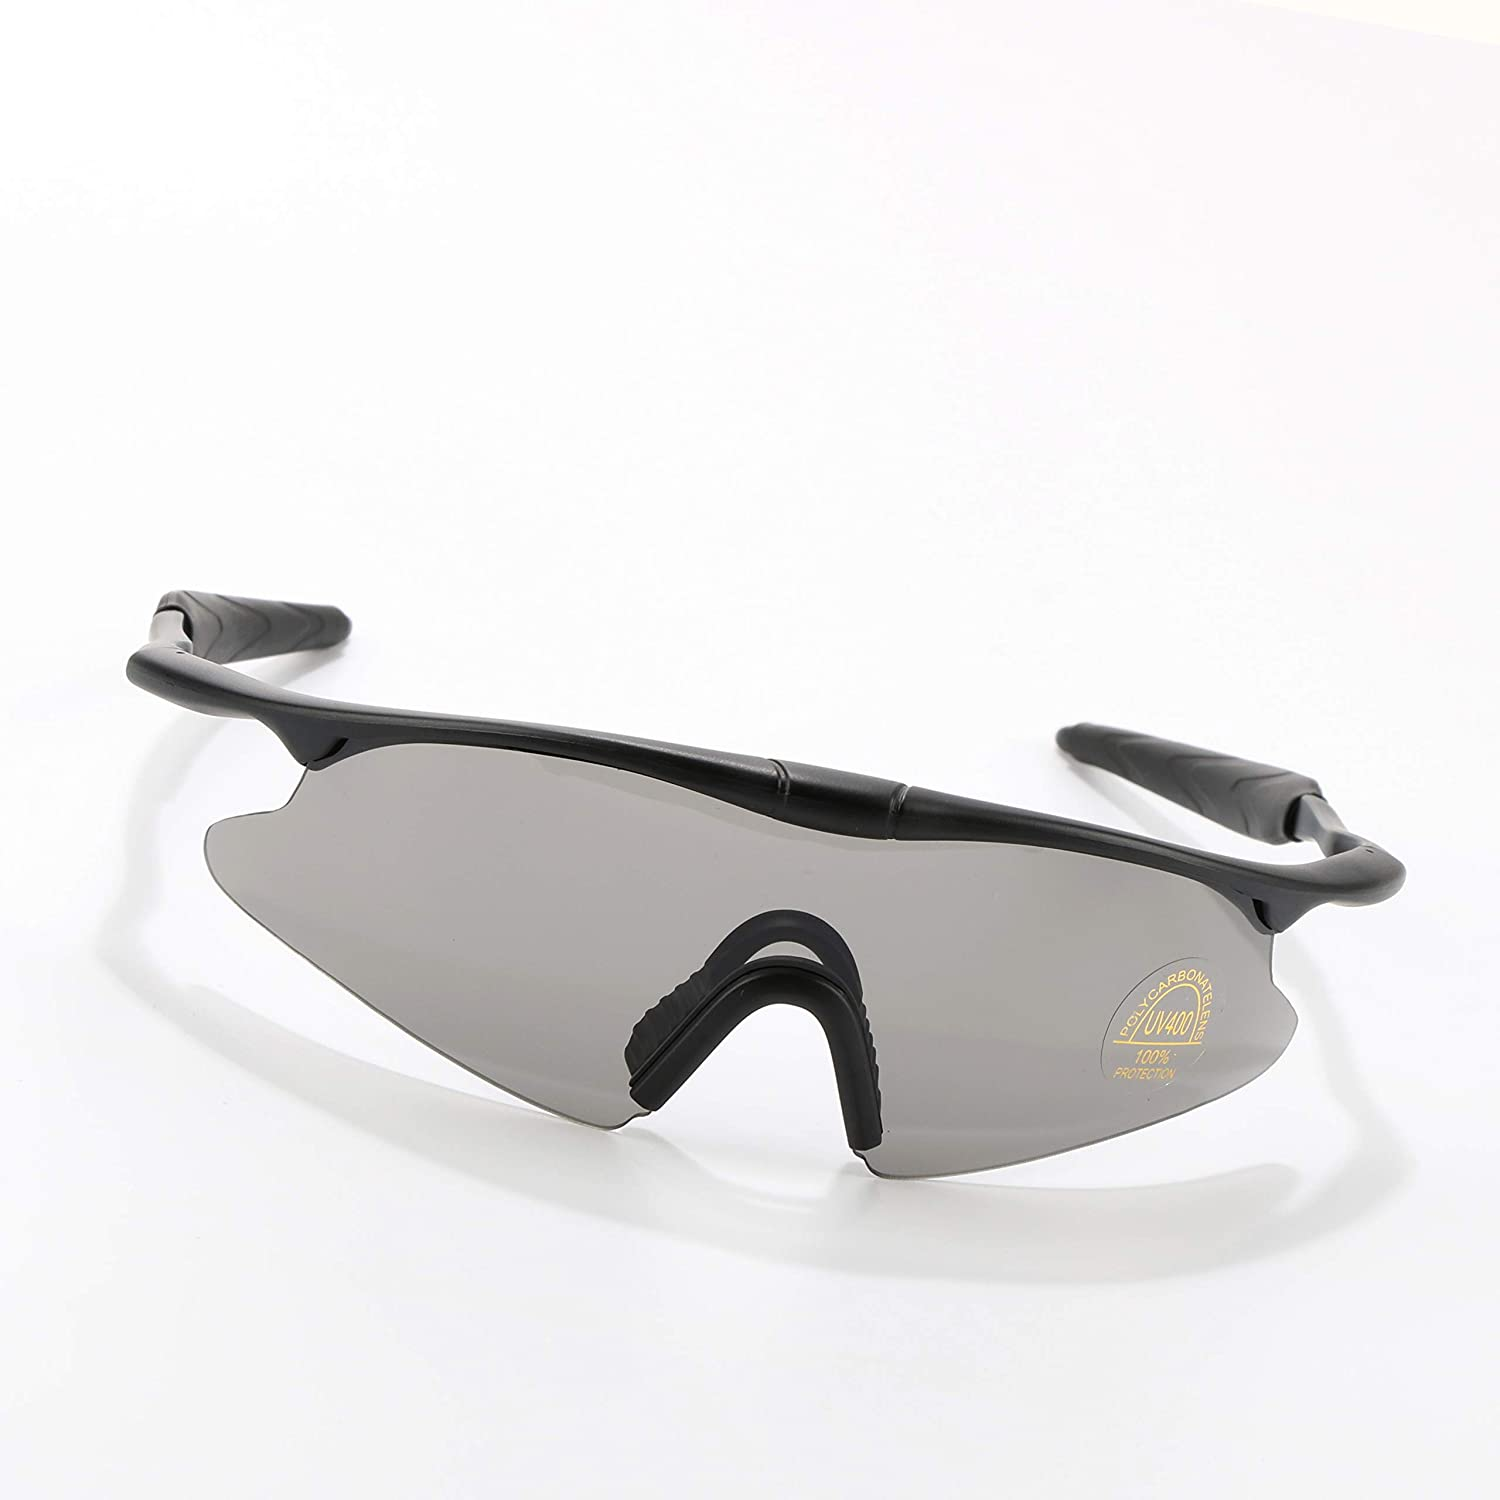 spiid Outdoor Tactical Goggles Military Sunglasses Military Eyewear ...